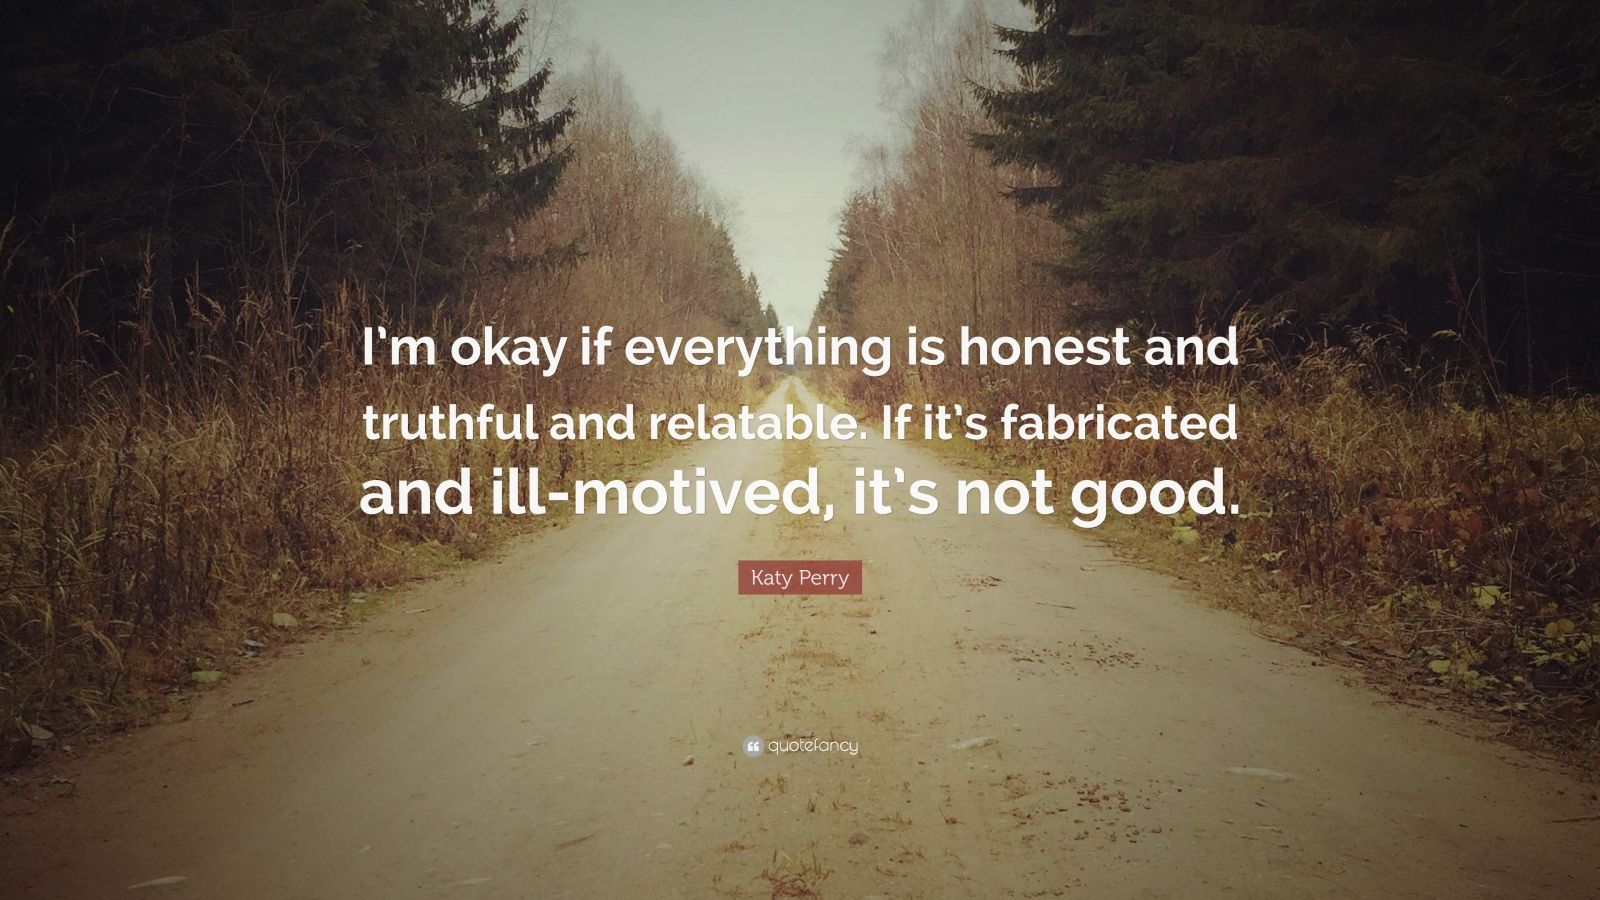 "Katy Perry Quote: ""I'm okay if everything is honest and truthful and relatable. If it's fabricated and ill-motived, it's not good."""